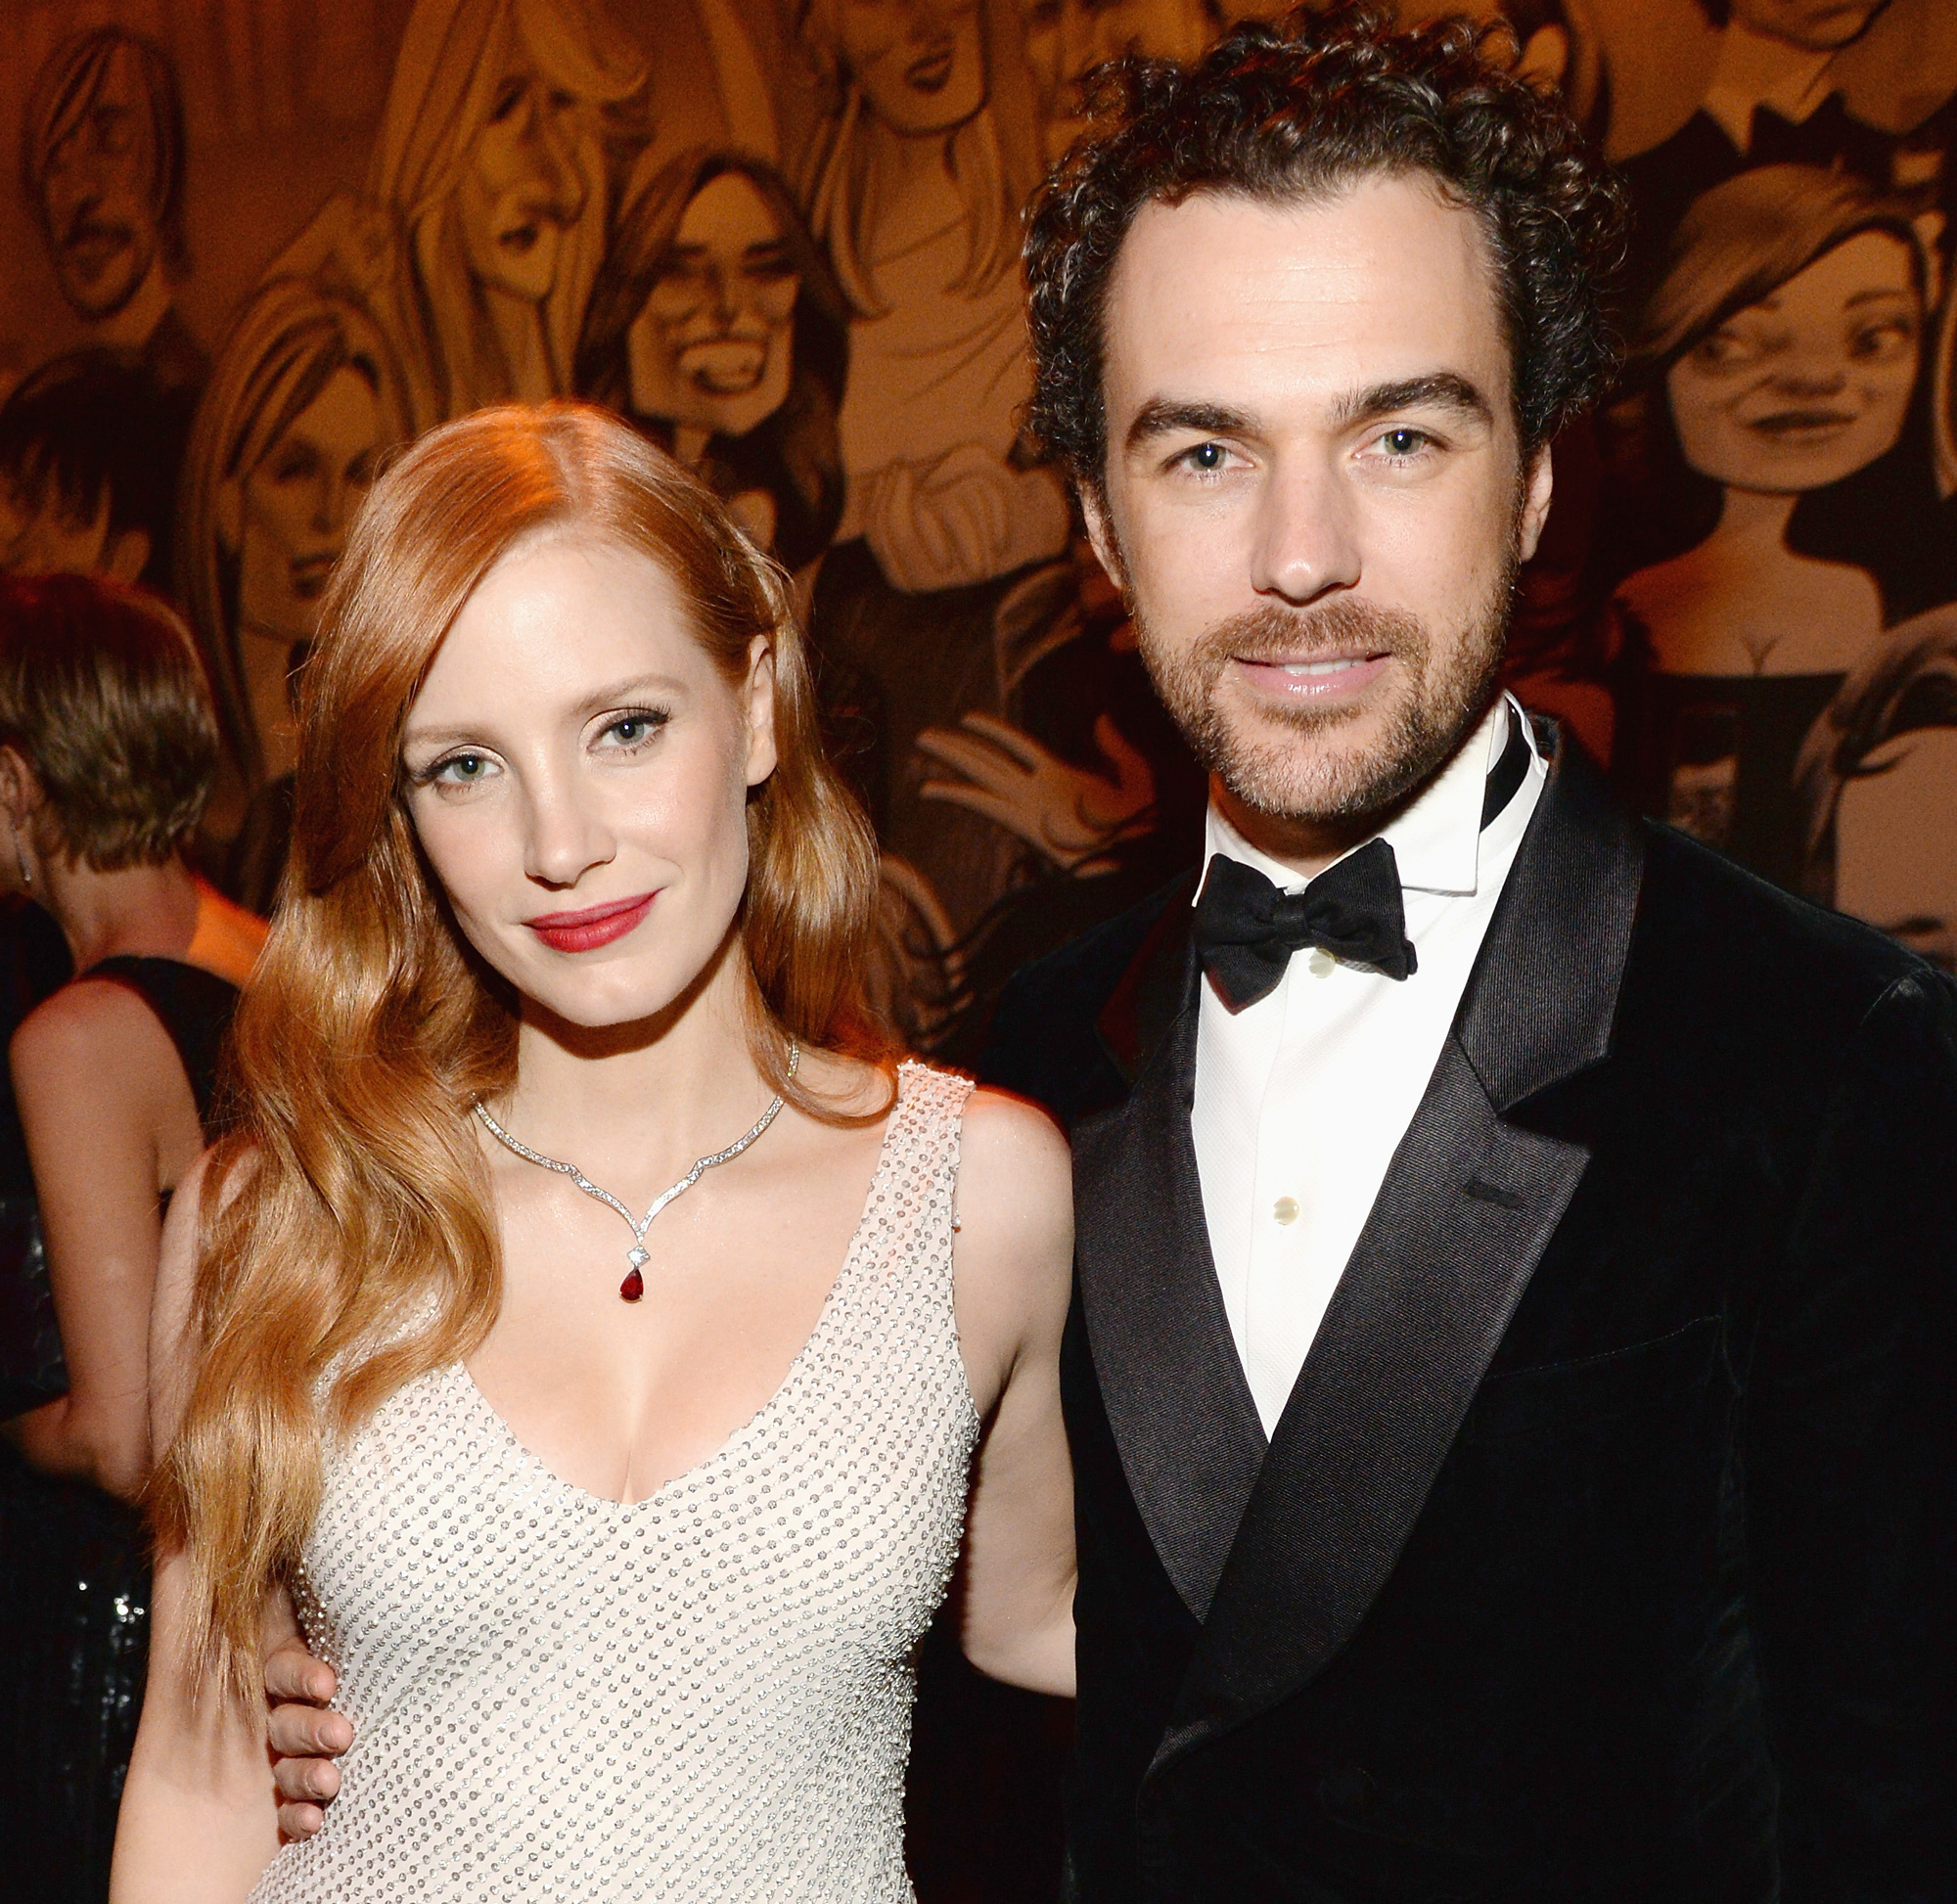 Newlywed Jessica Chastain Shows Off Her Stunning Ring In NYC